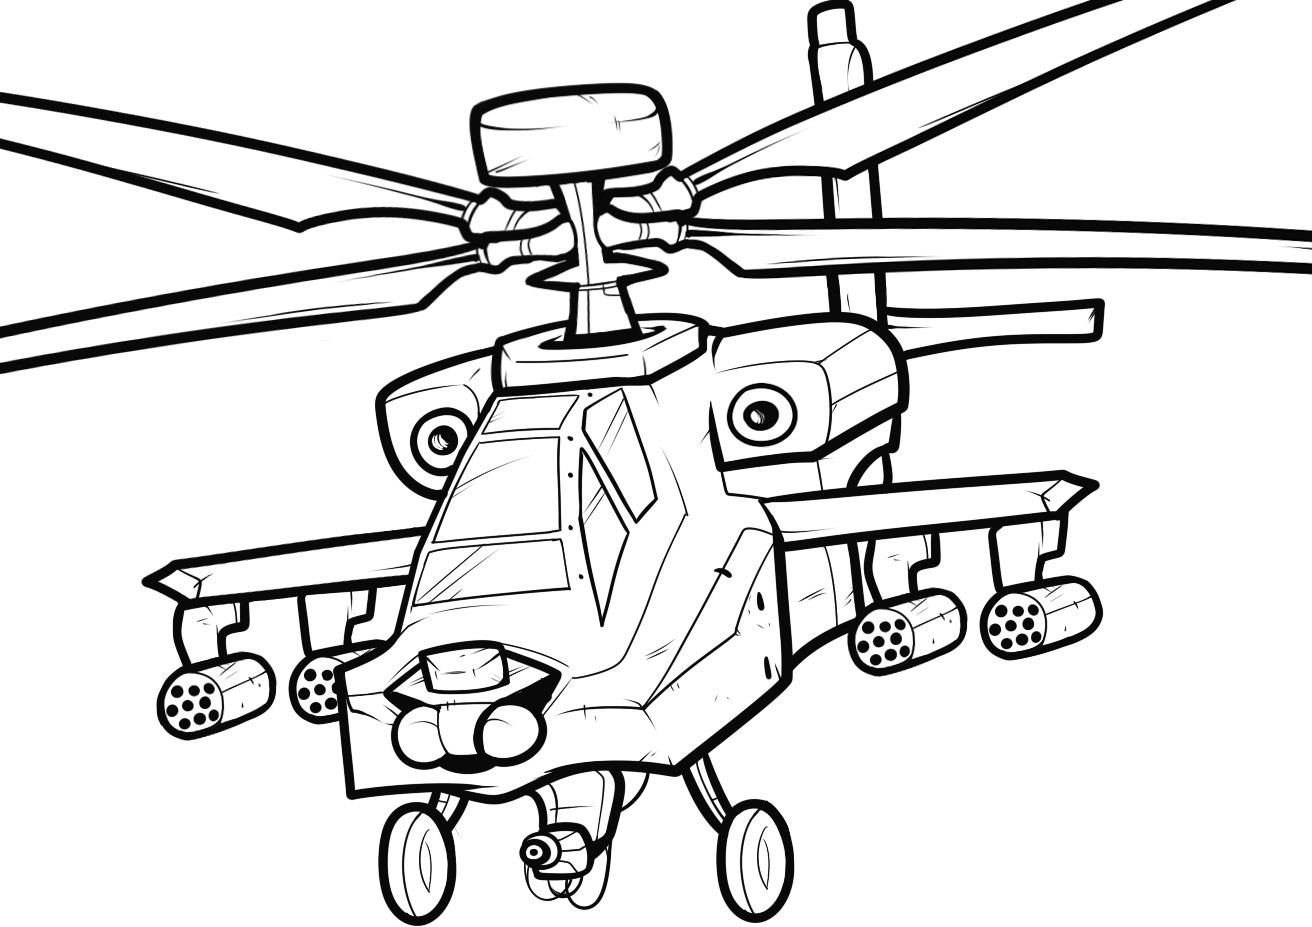 Blackhawk Helicopter Coloring Pages At Getdrawings Free Download